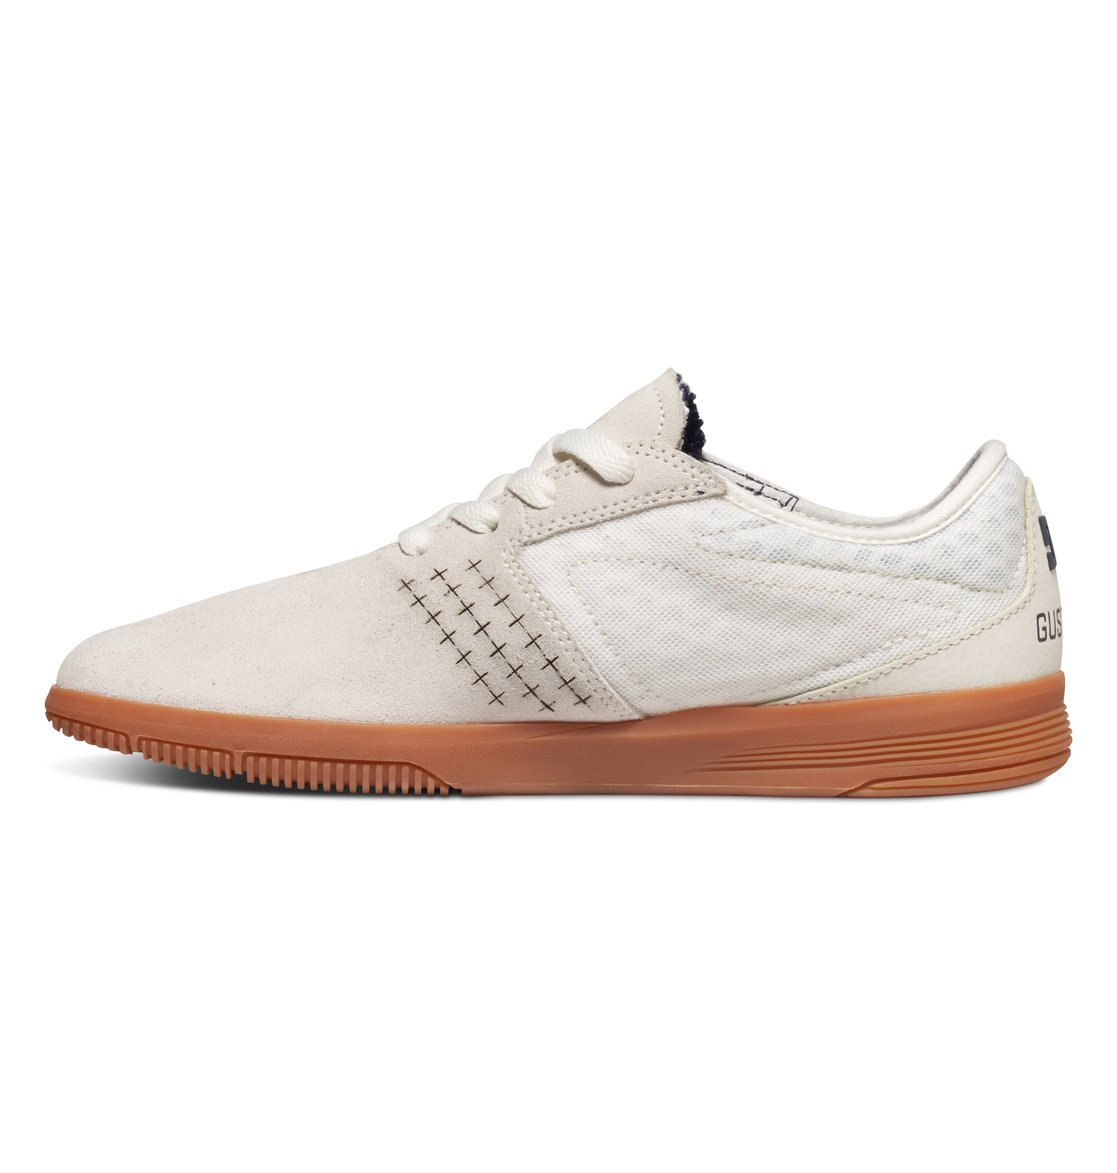 DC Shoes New Jack S - Skate Shoes - Chaussures de skate - Homme rm9ydbUxMW